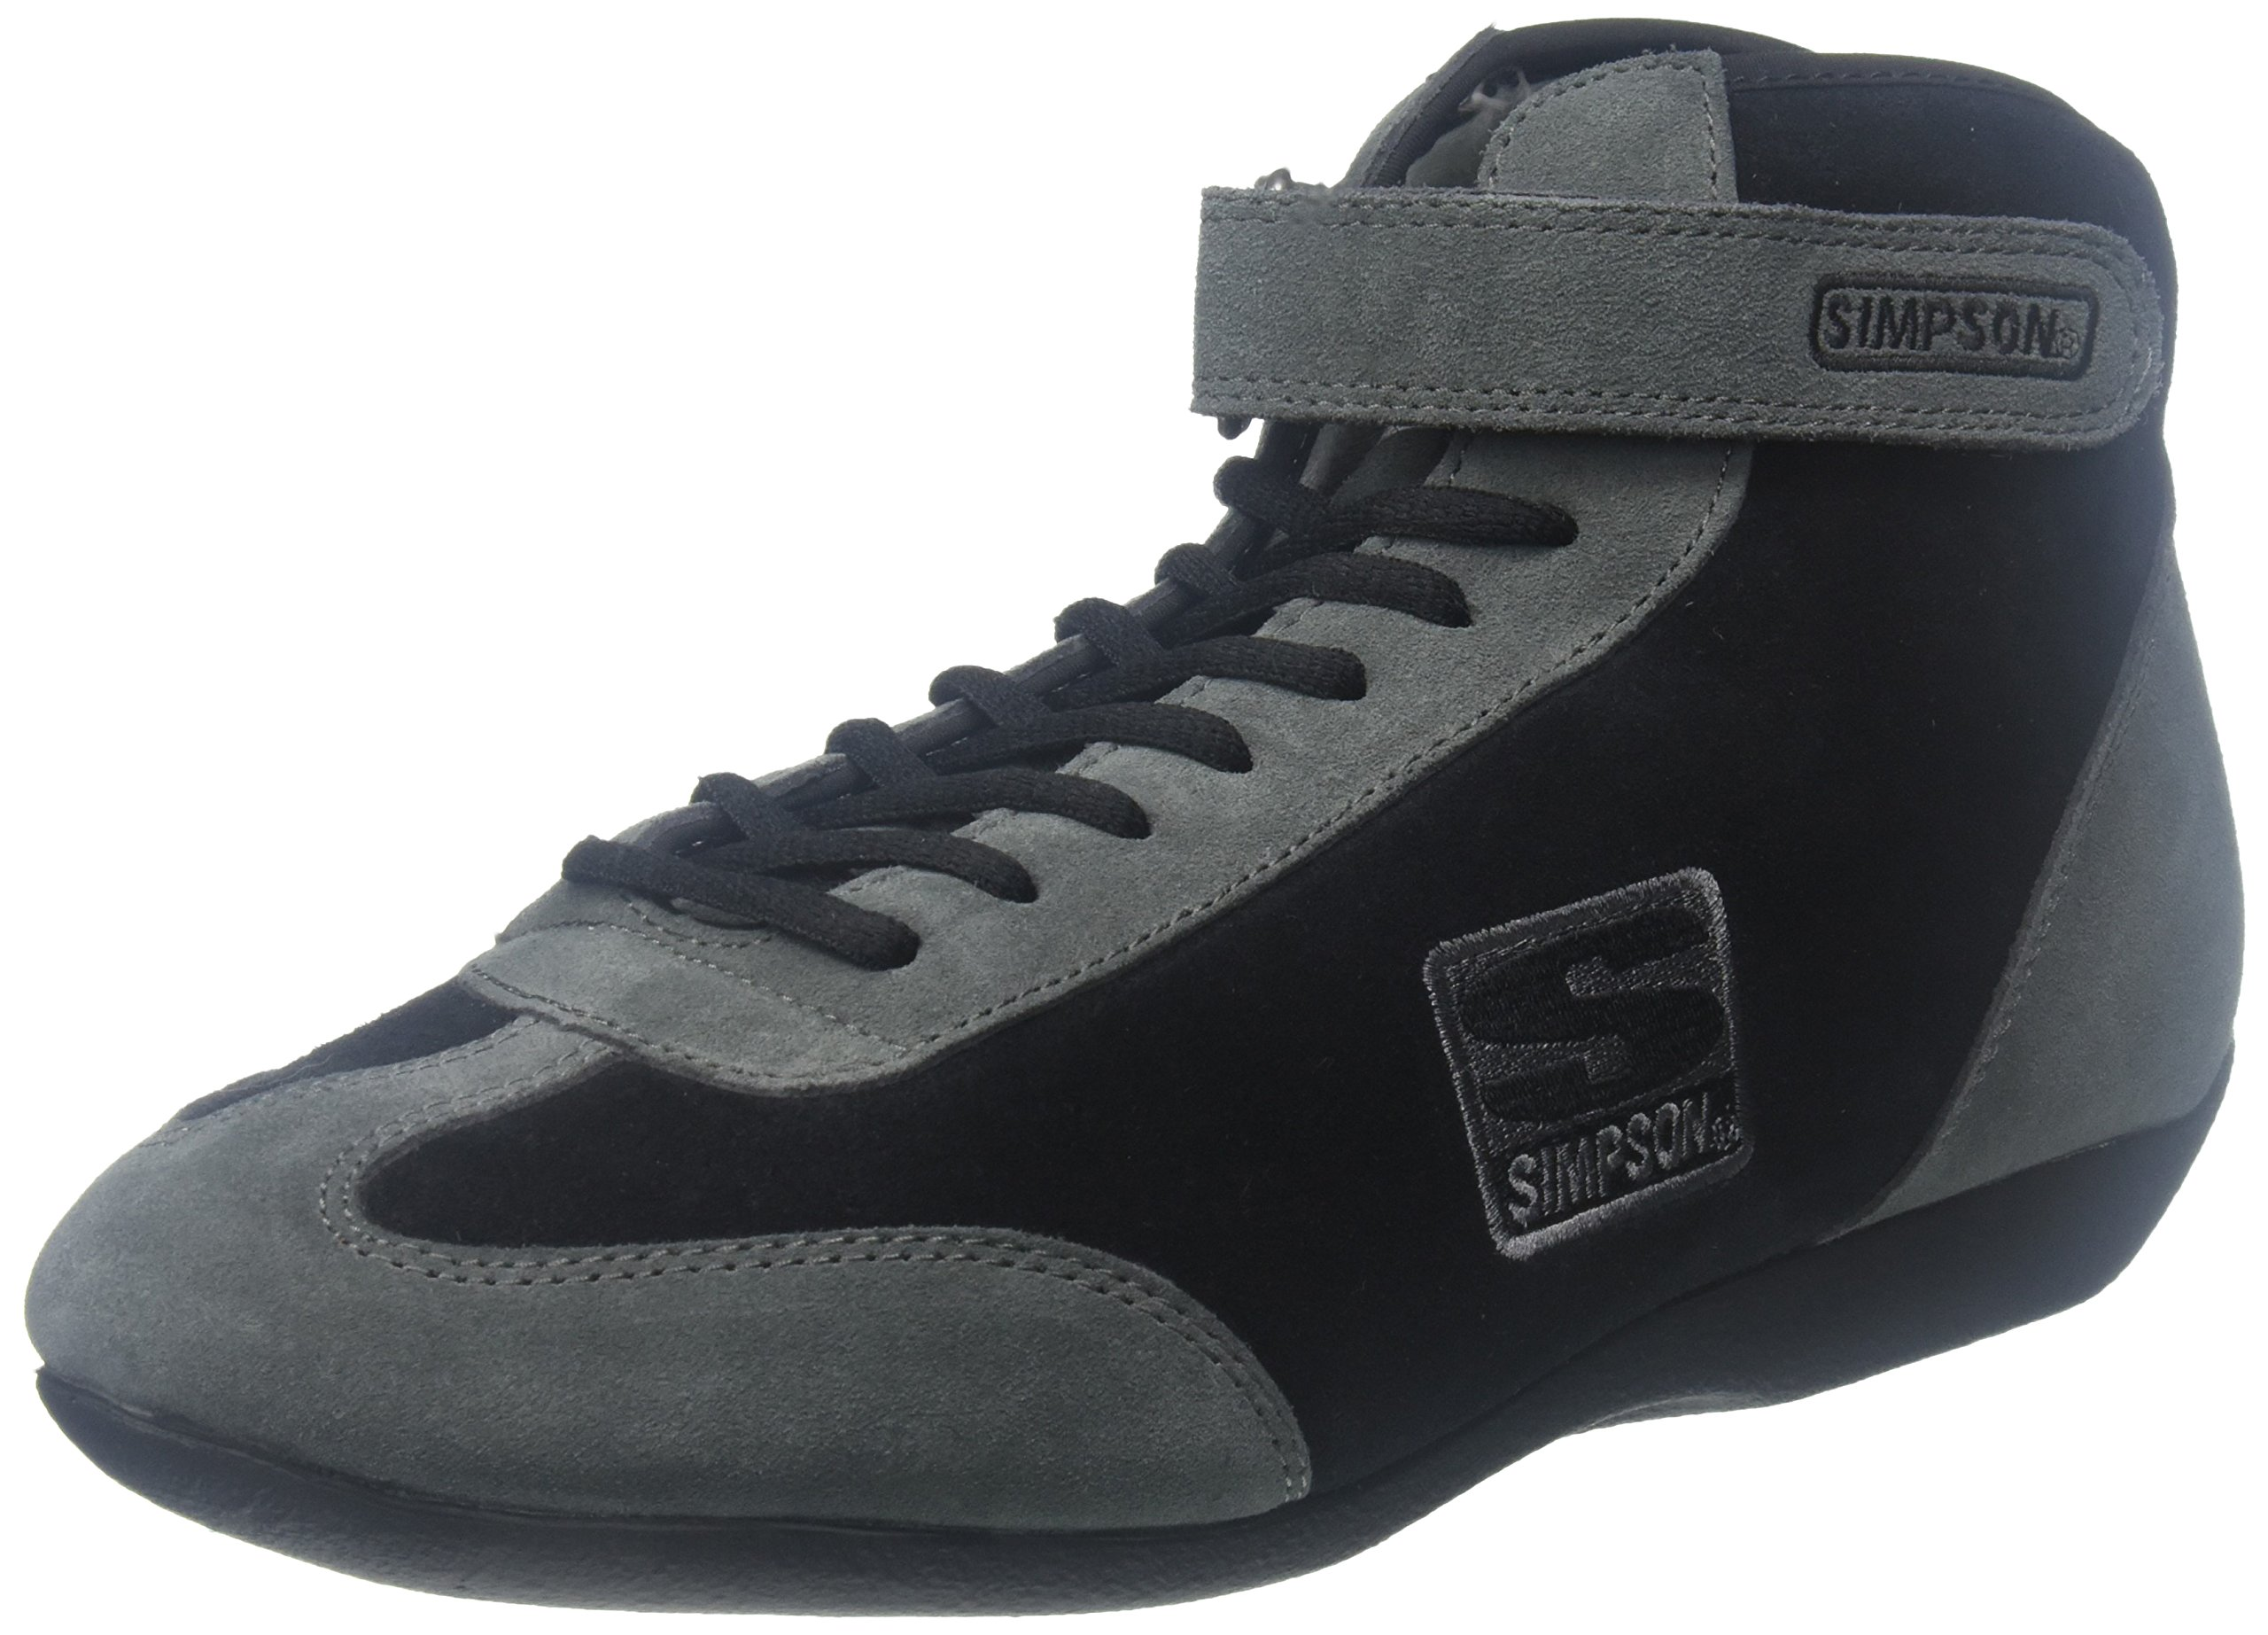 Simpson MT115BK Shoes by Simpson